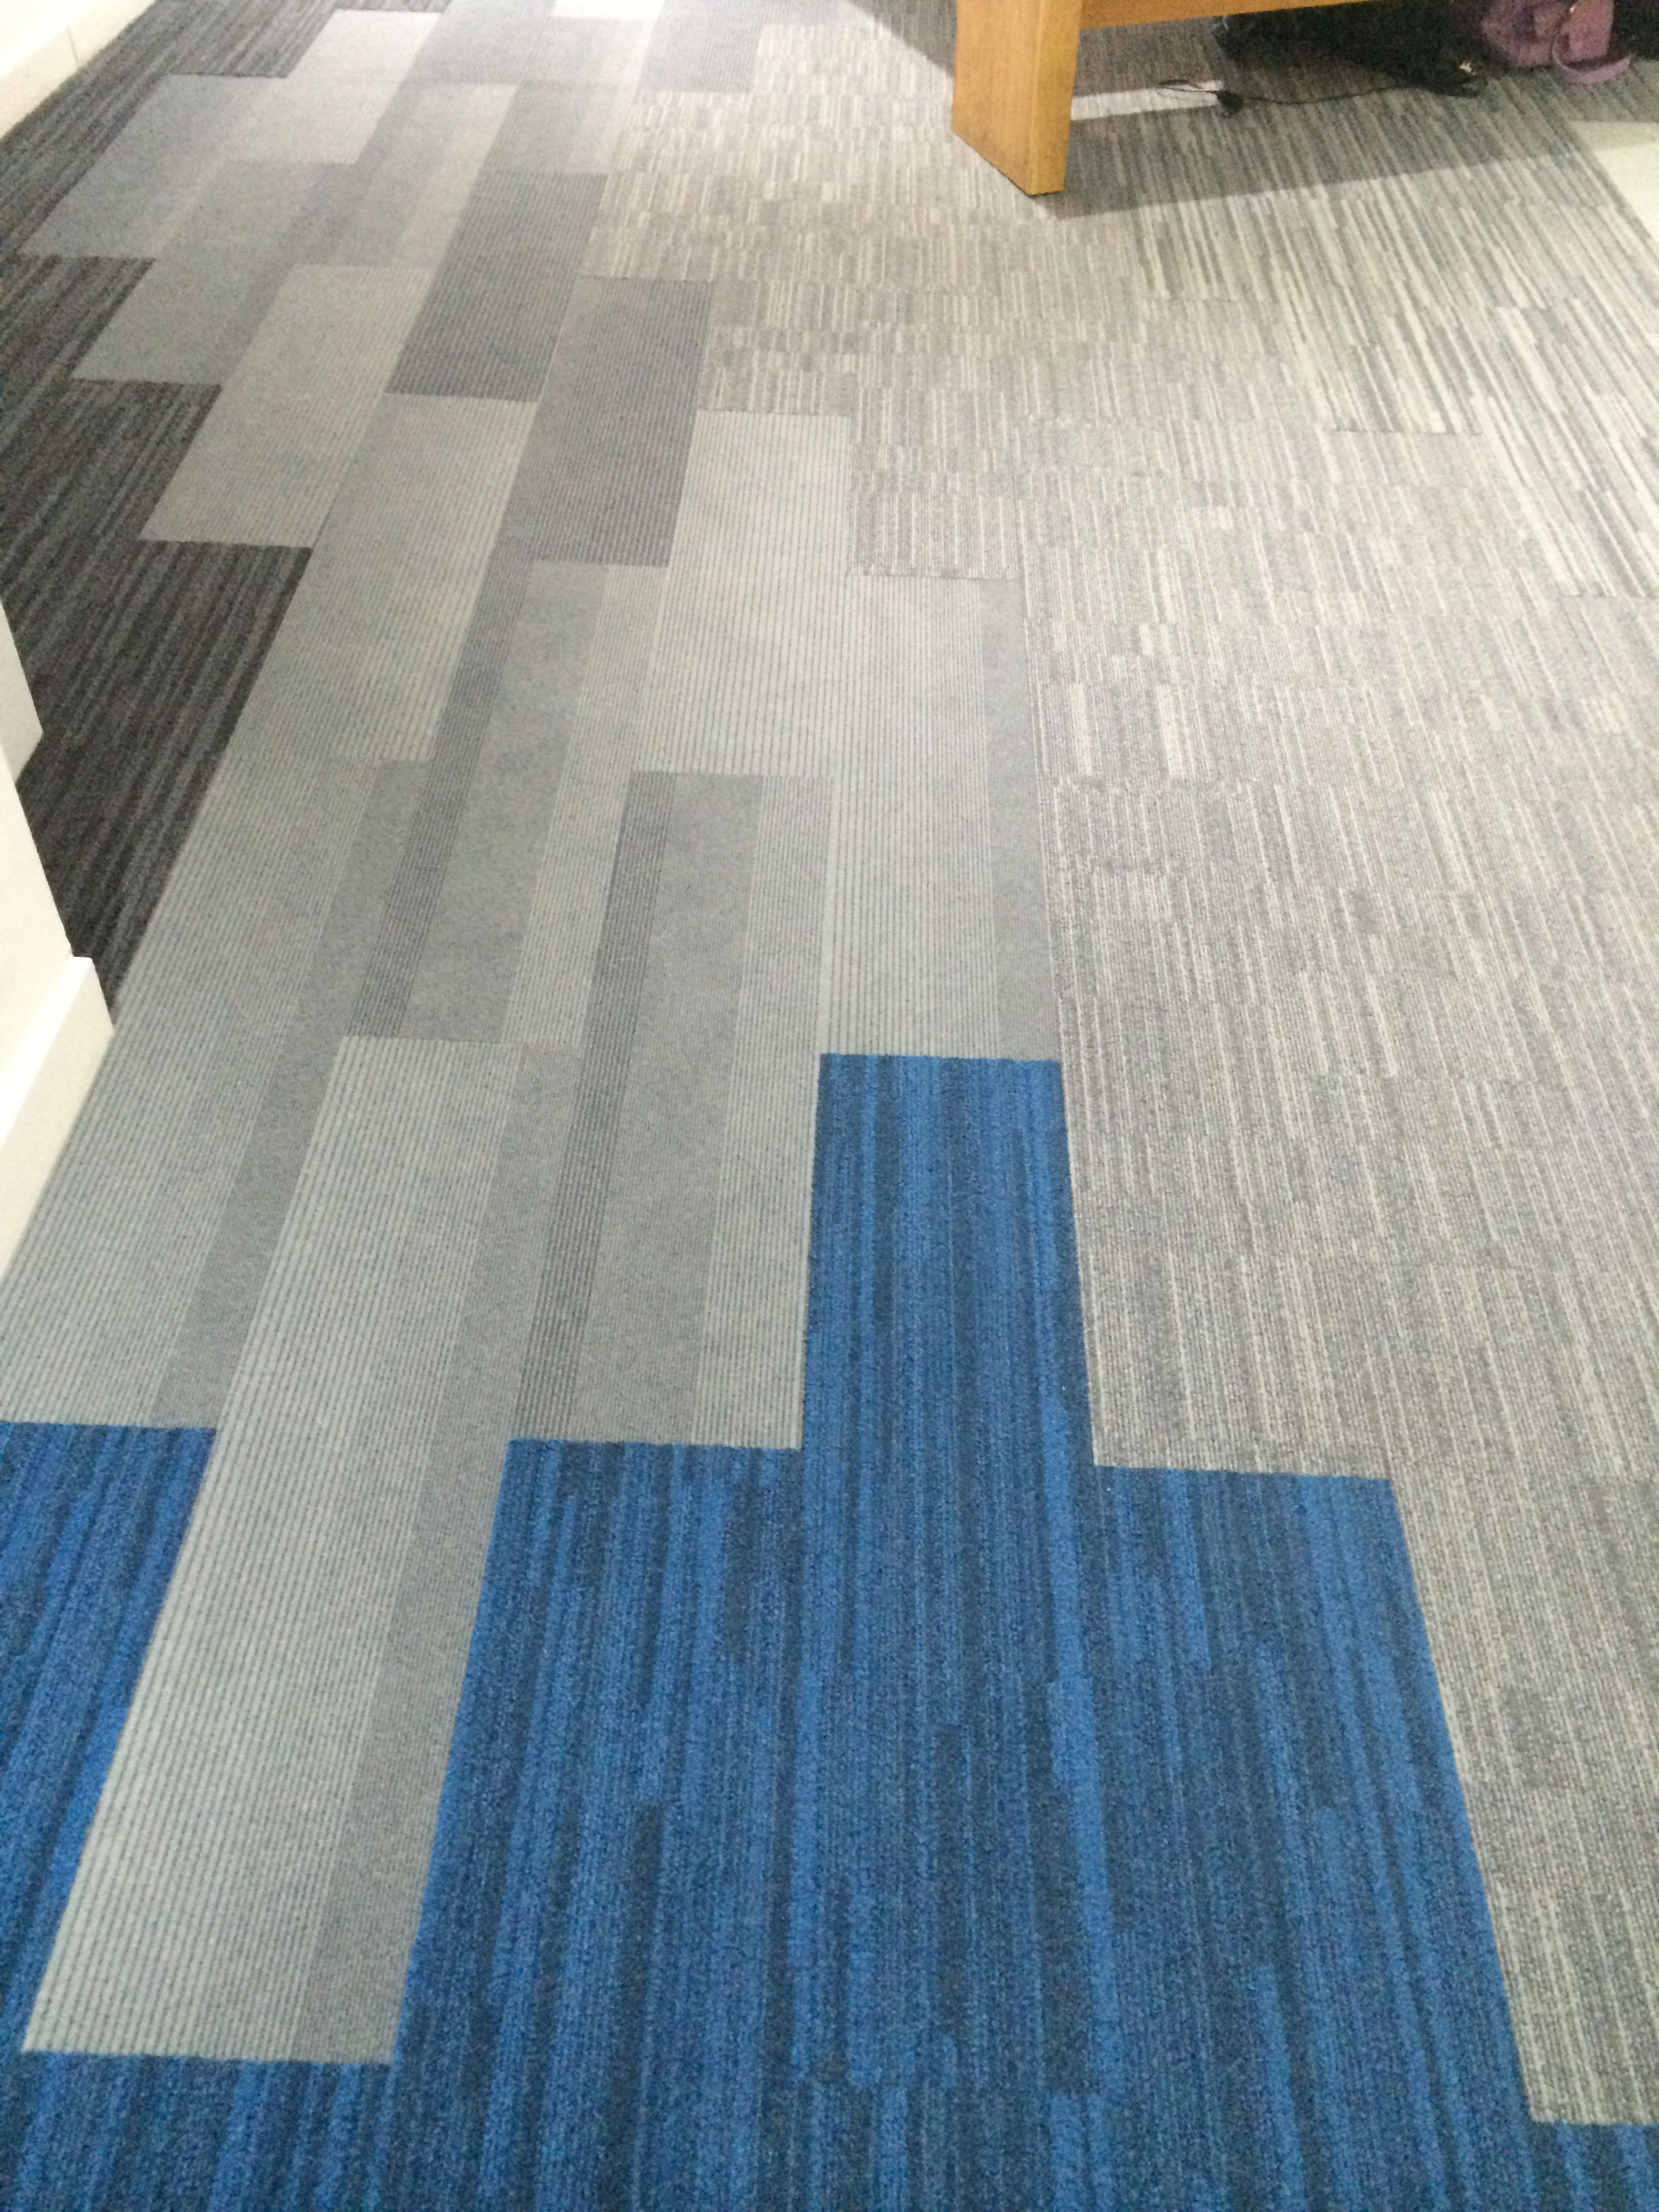 Carpet Tile Planks by Interface flooring.